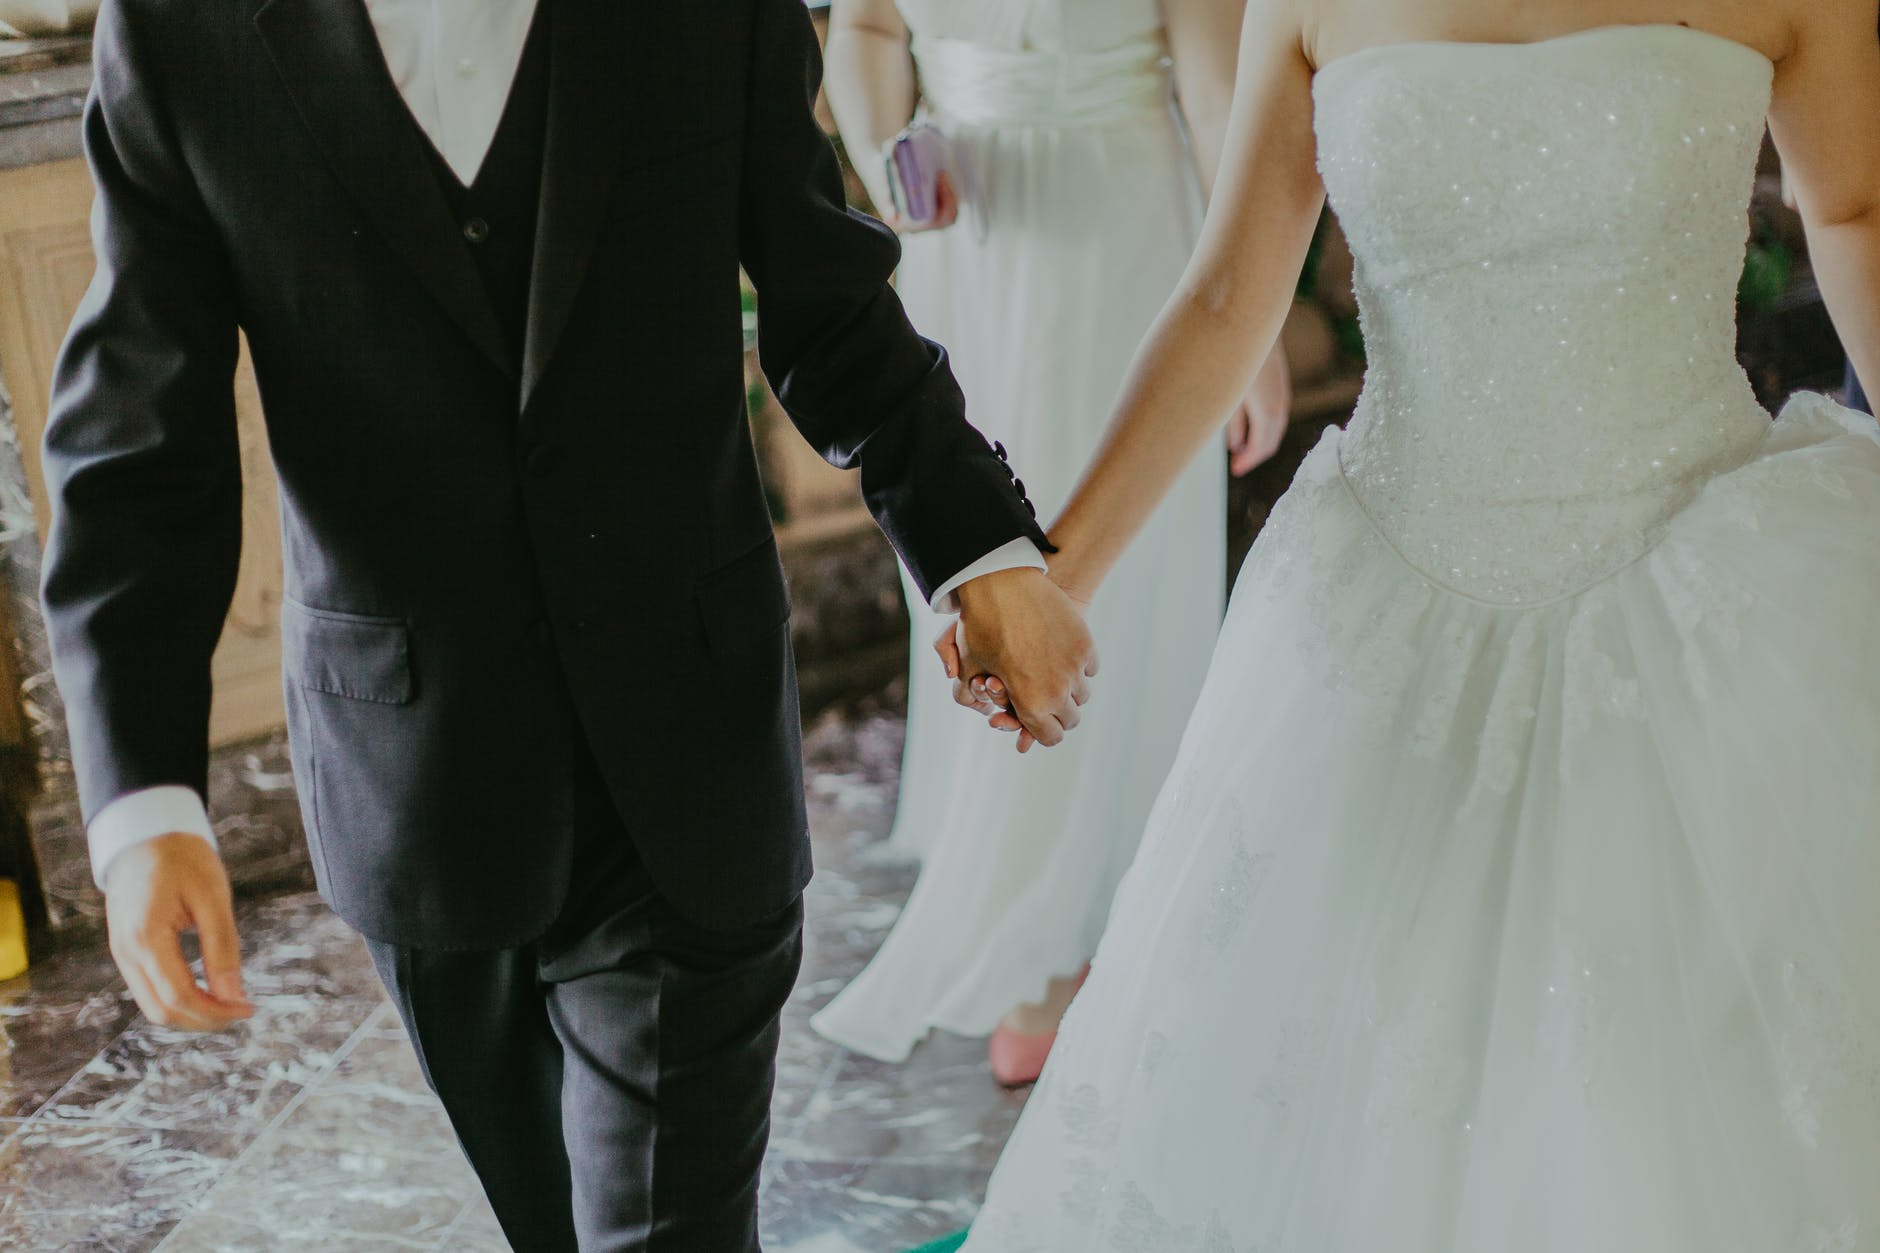 I came to the realization that my son was getting married without my awareness | Source: Pexels